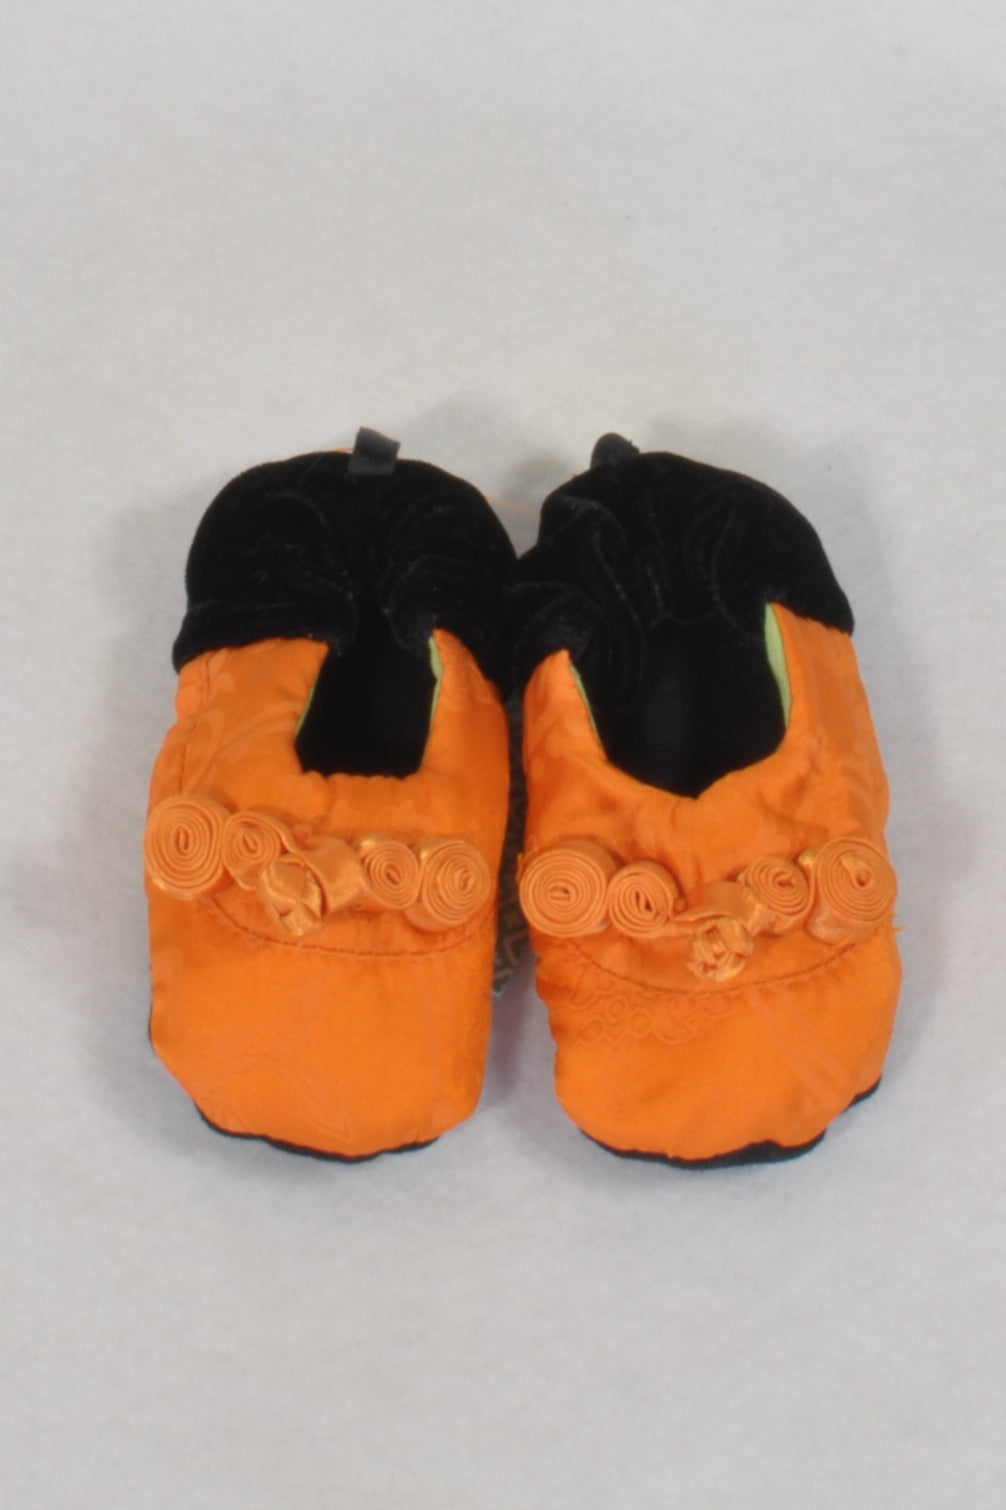 New Unknown Brand Orange And Black Velvet Softsole  Shoes Girls 3-6 months